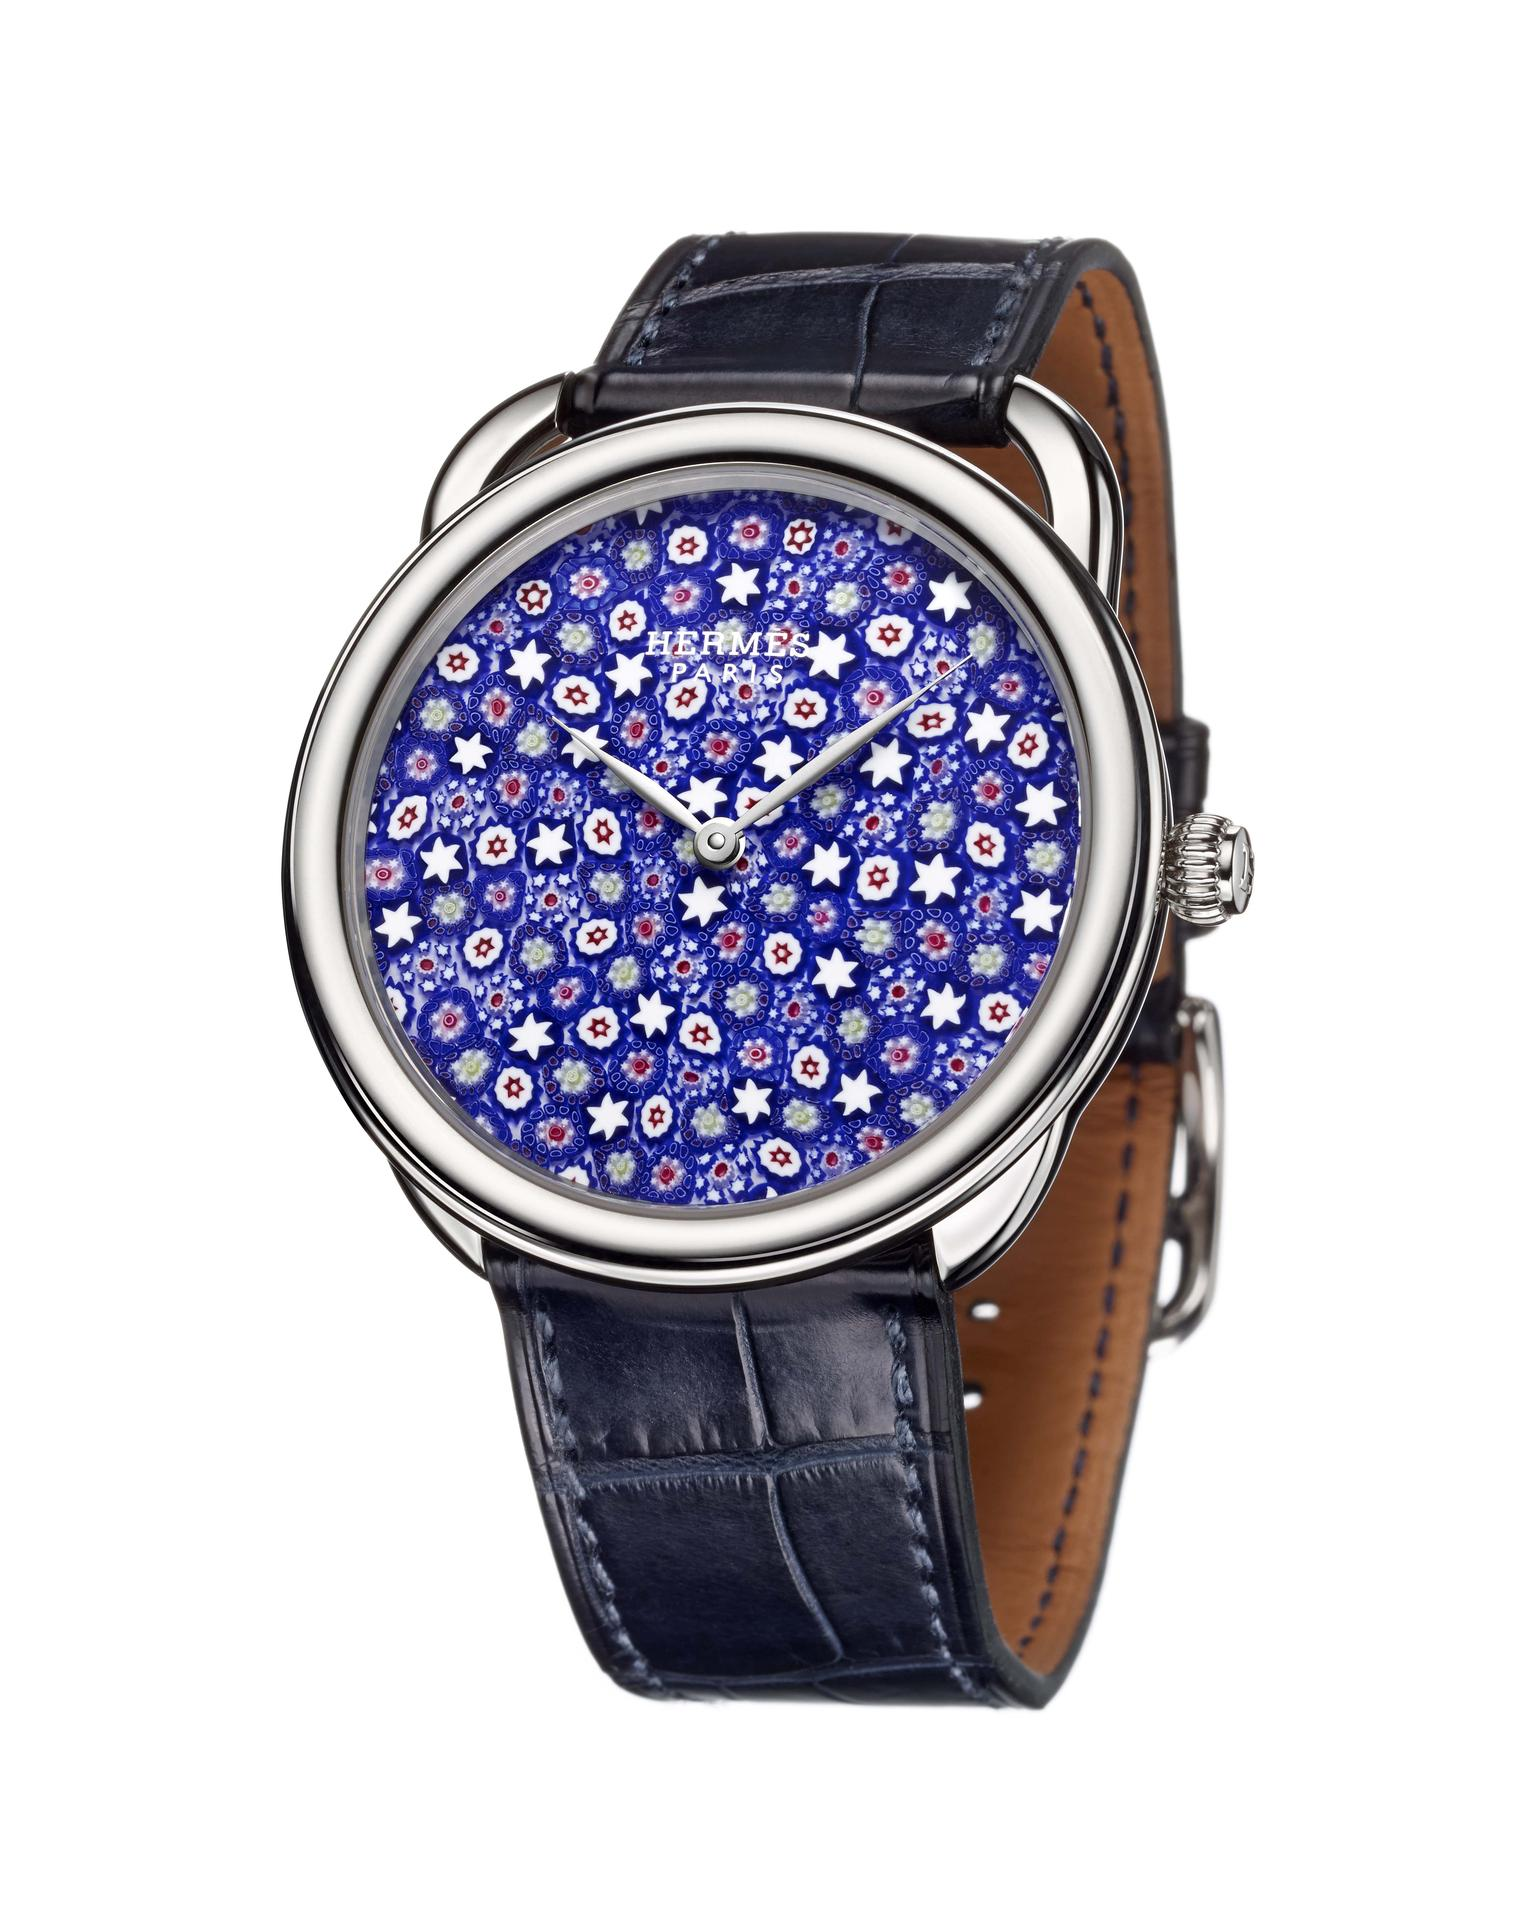 Hermès Arceau Millefiori watch in blue.